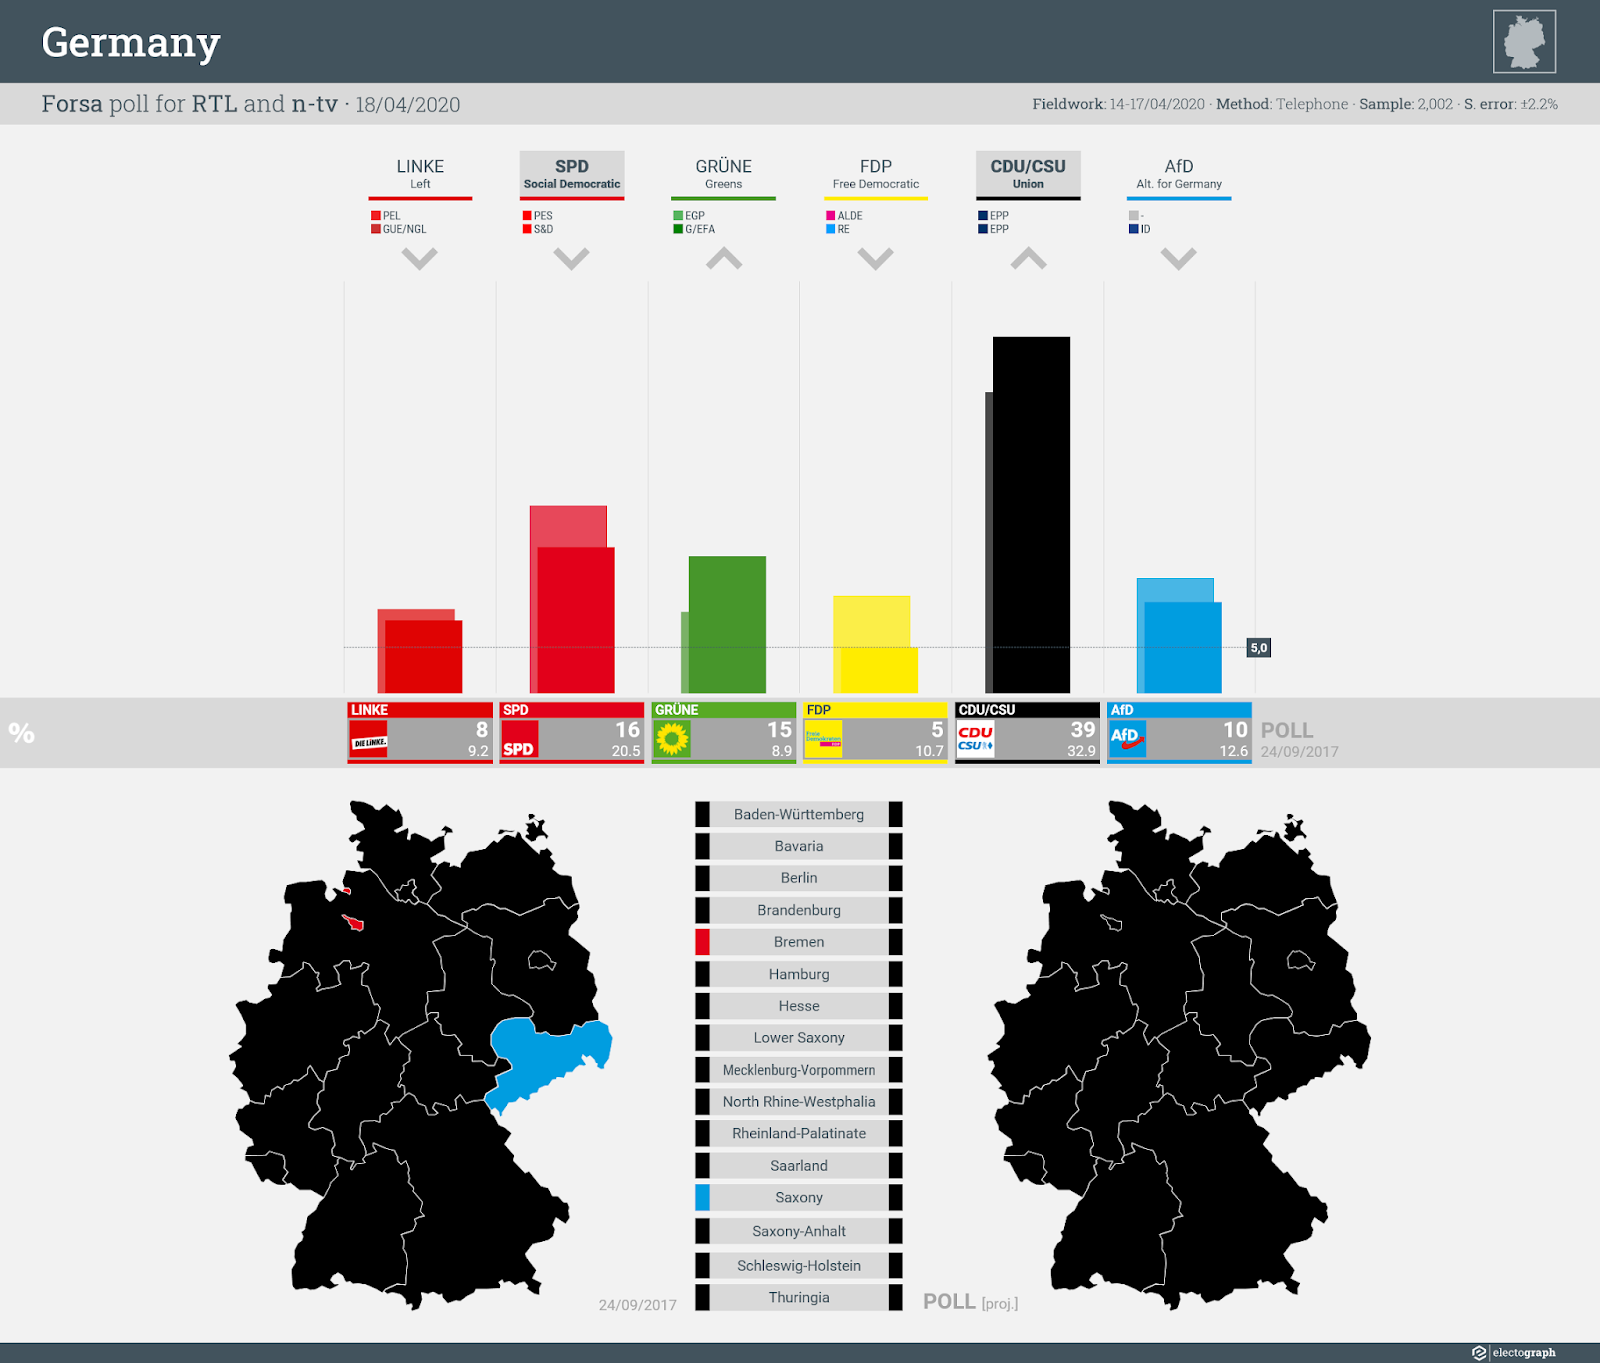 GERMANY: Forsa poll chart for RTL and n-tv, 18 April 2020